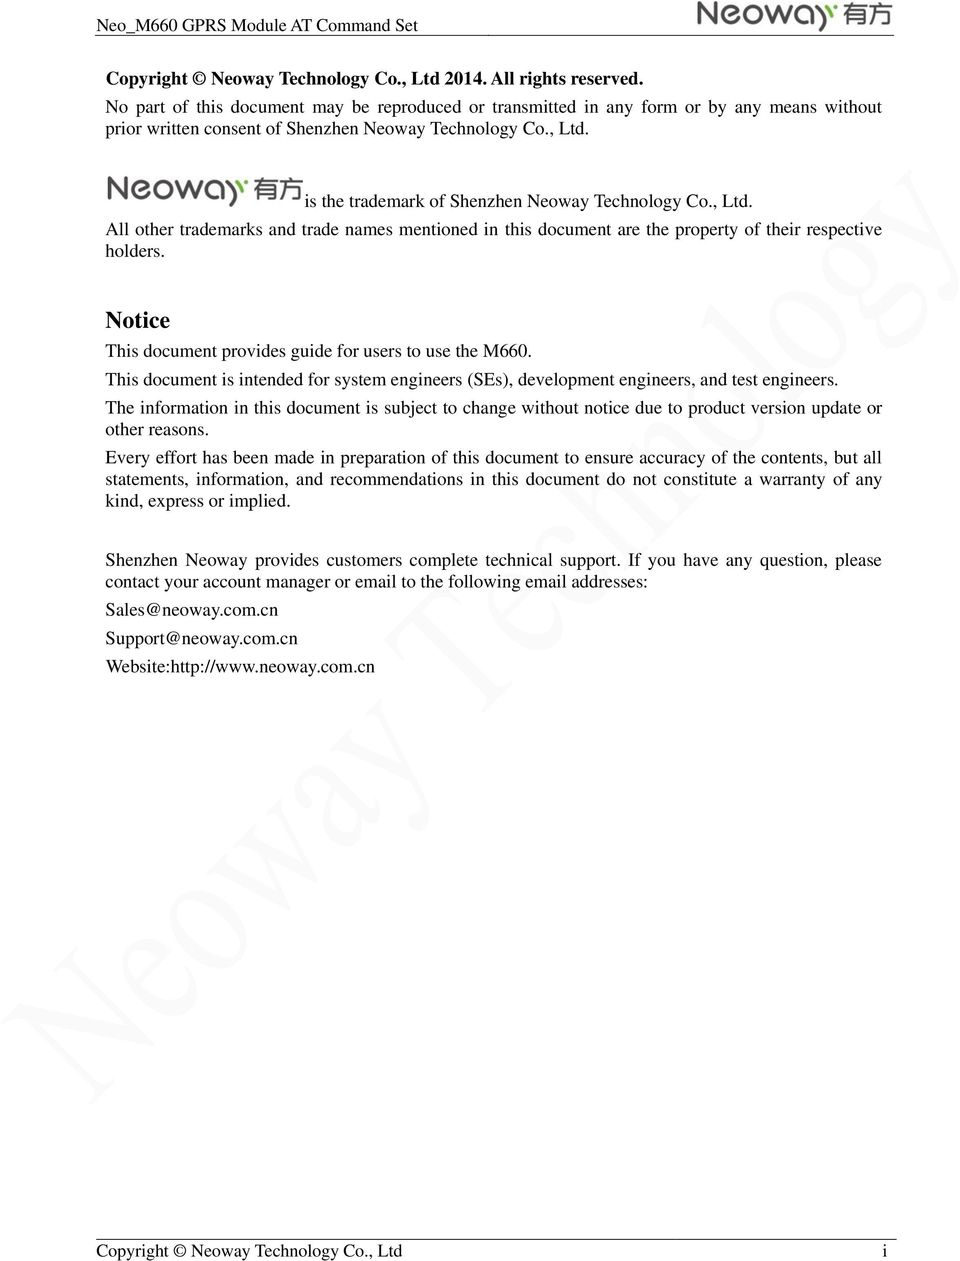 is the trademark of Shenzhen Neoway Technology Co., Ltd. All other trademarks and trade names mentioned in this document are the property of their respective holders.